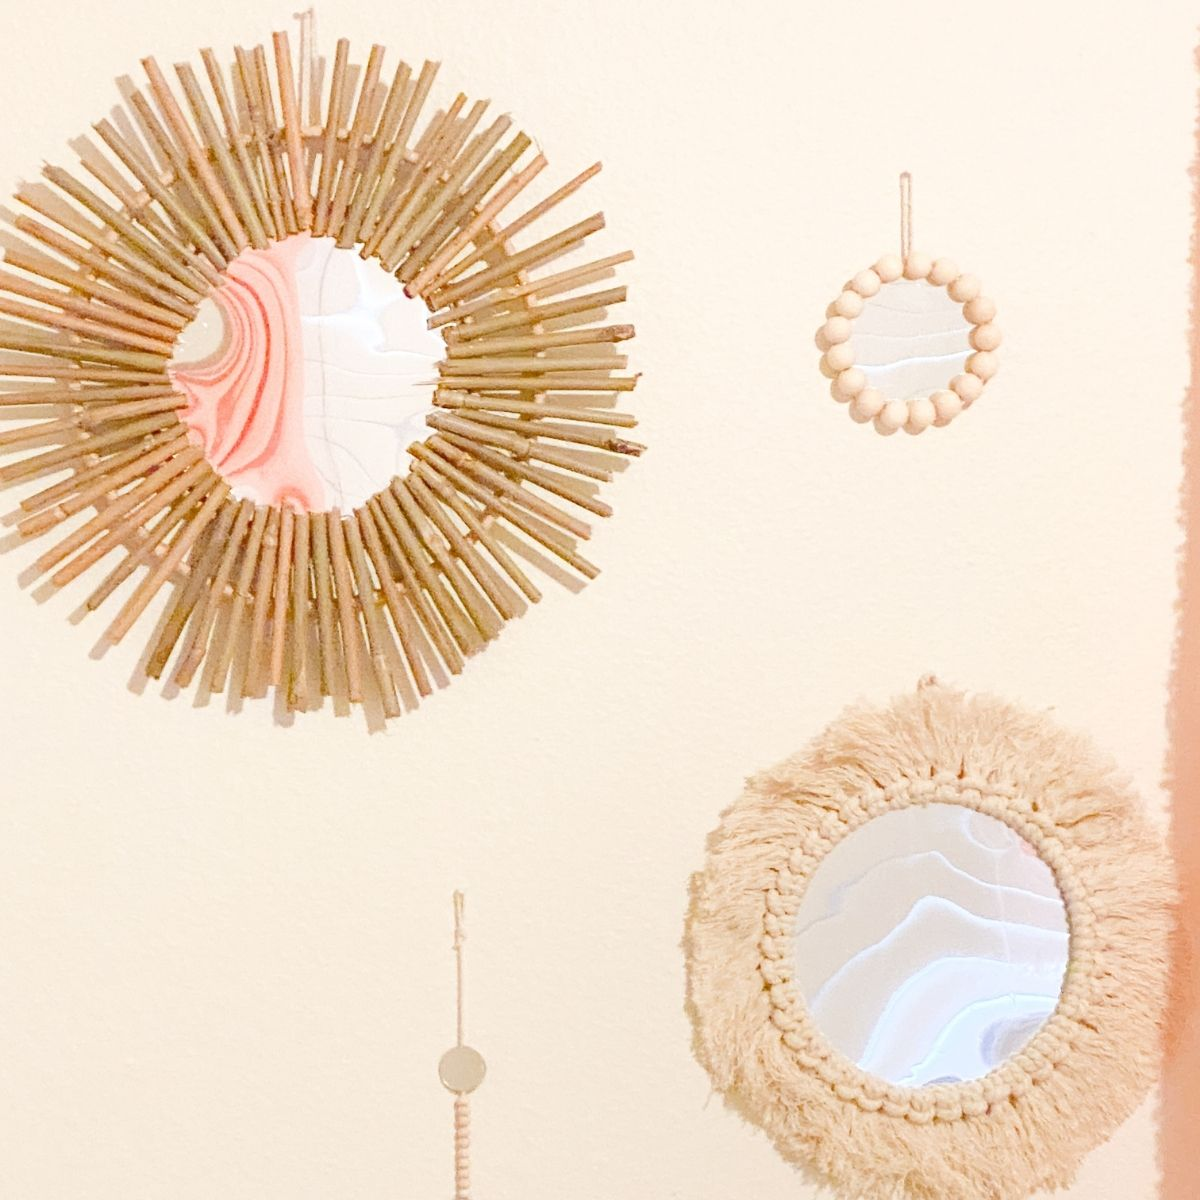 3 wall mirrors hanging on the wall